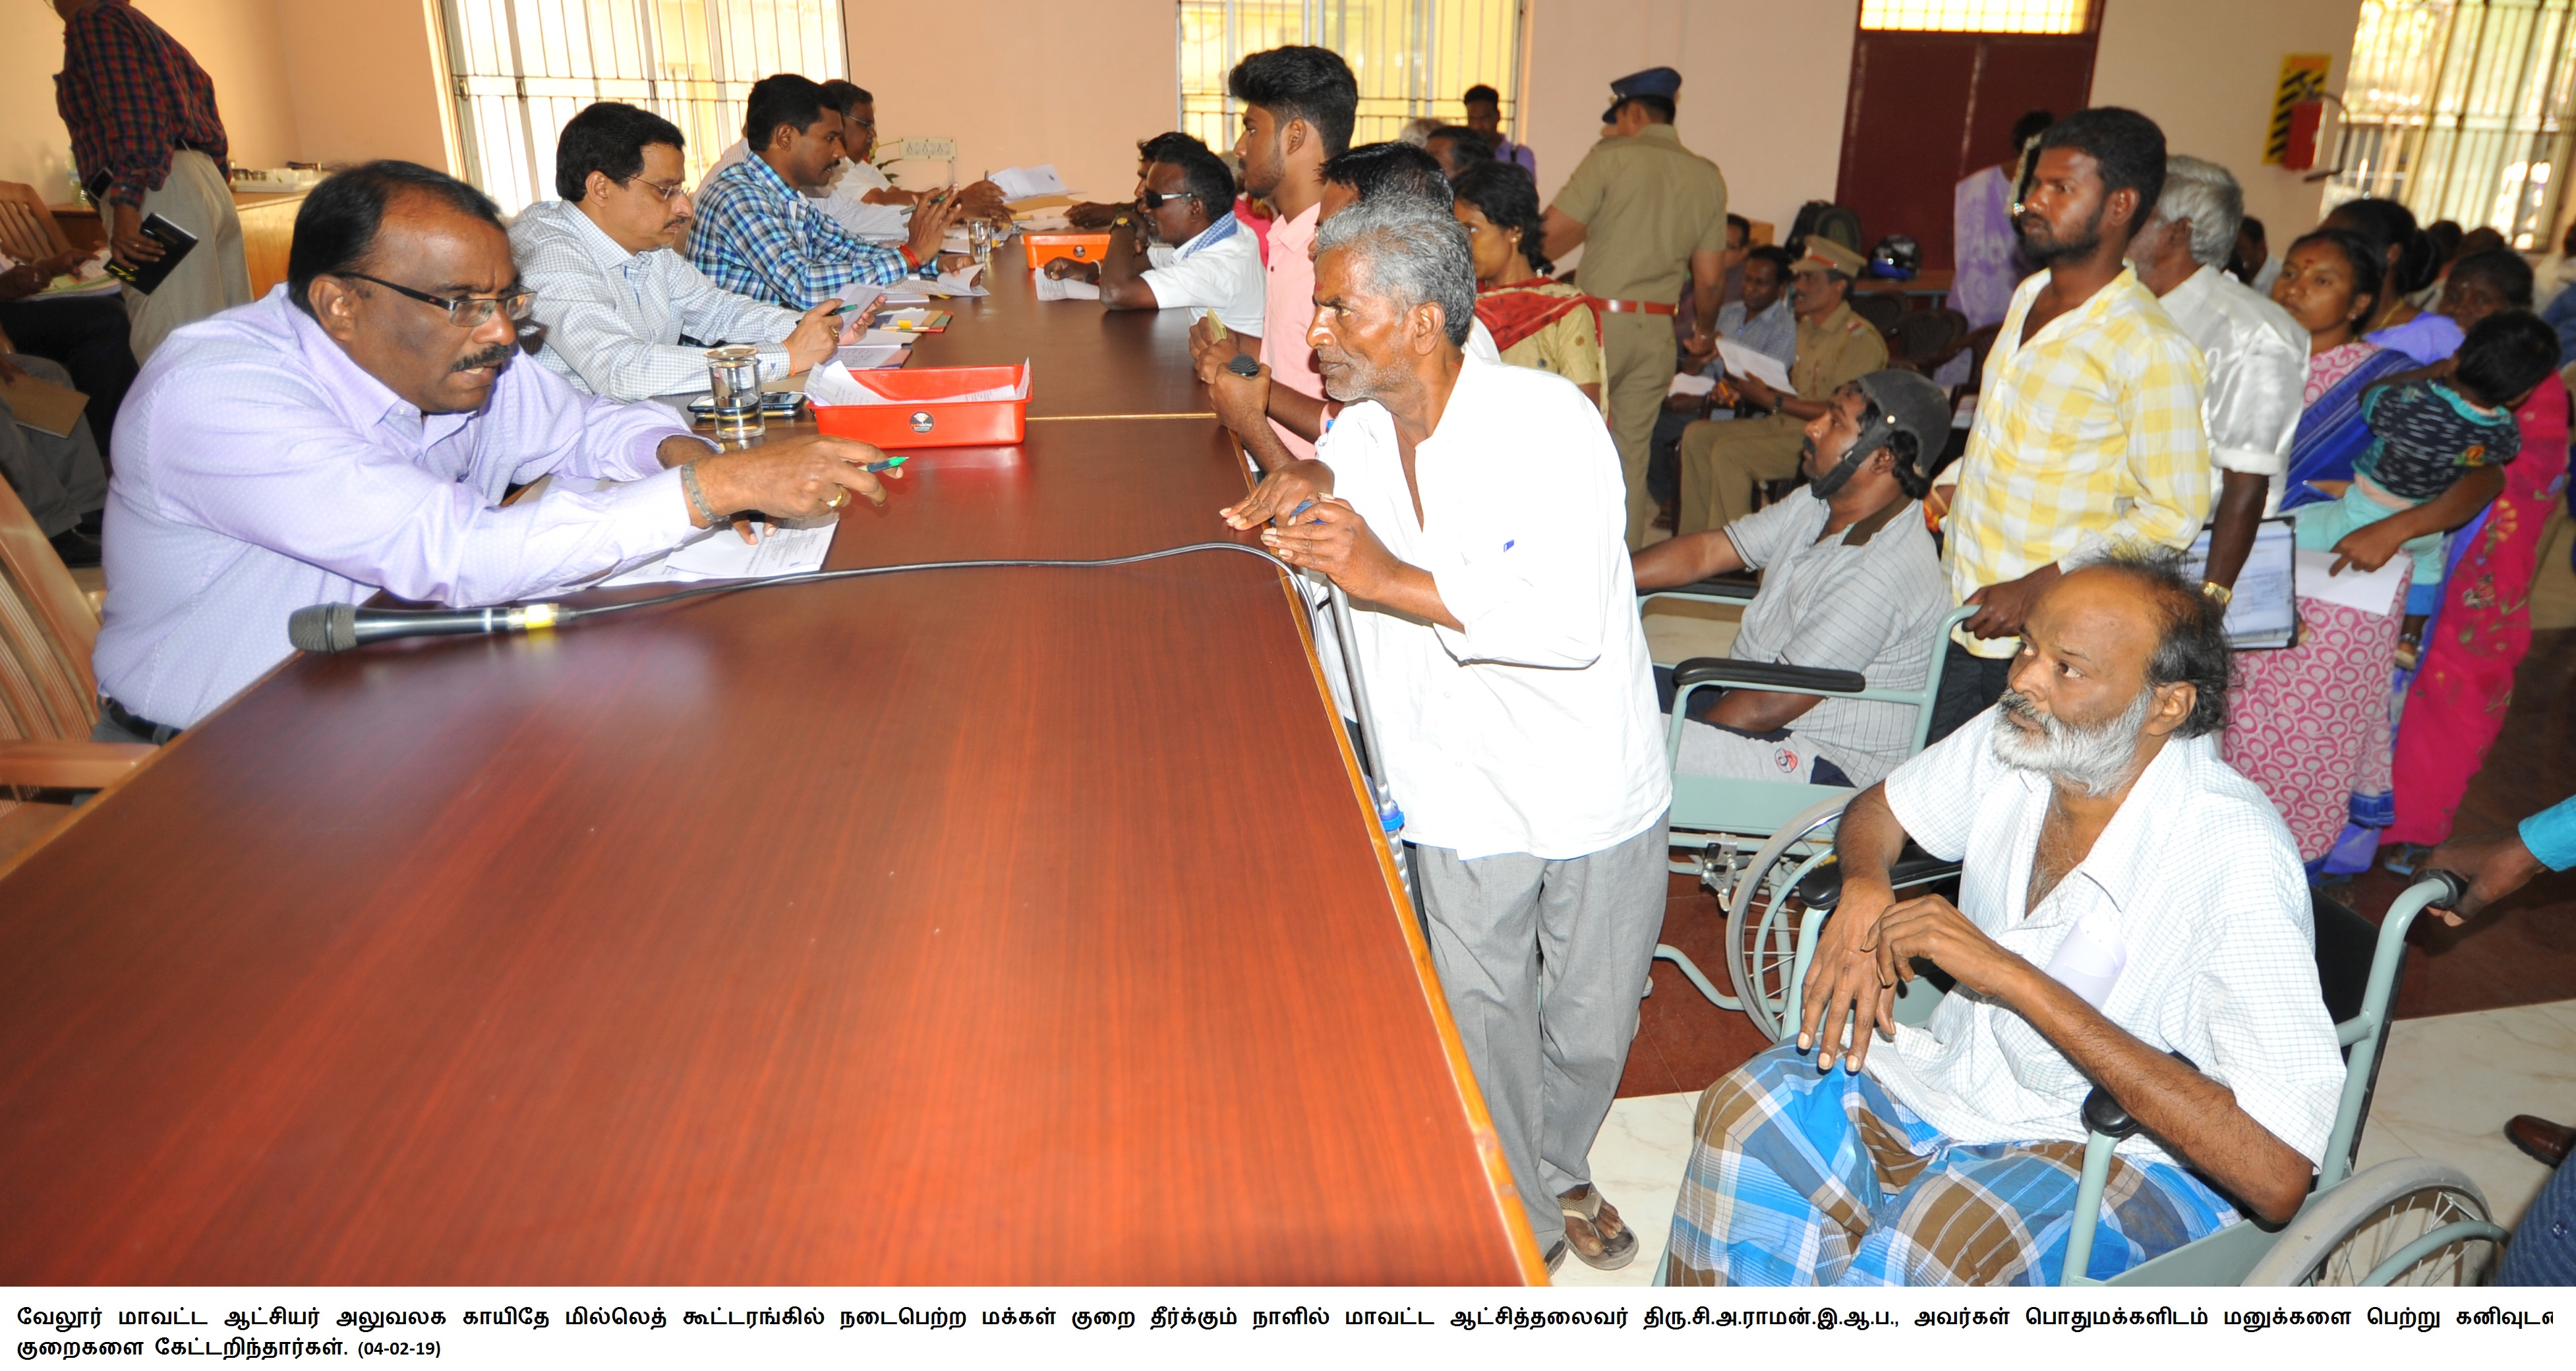 Public grievance redressal day